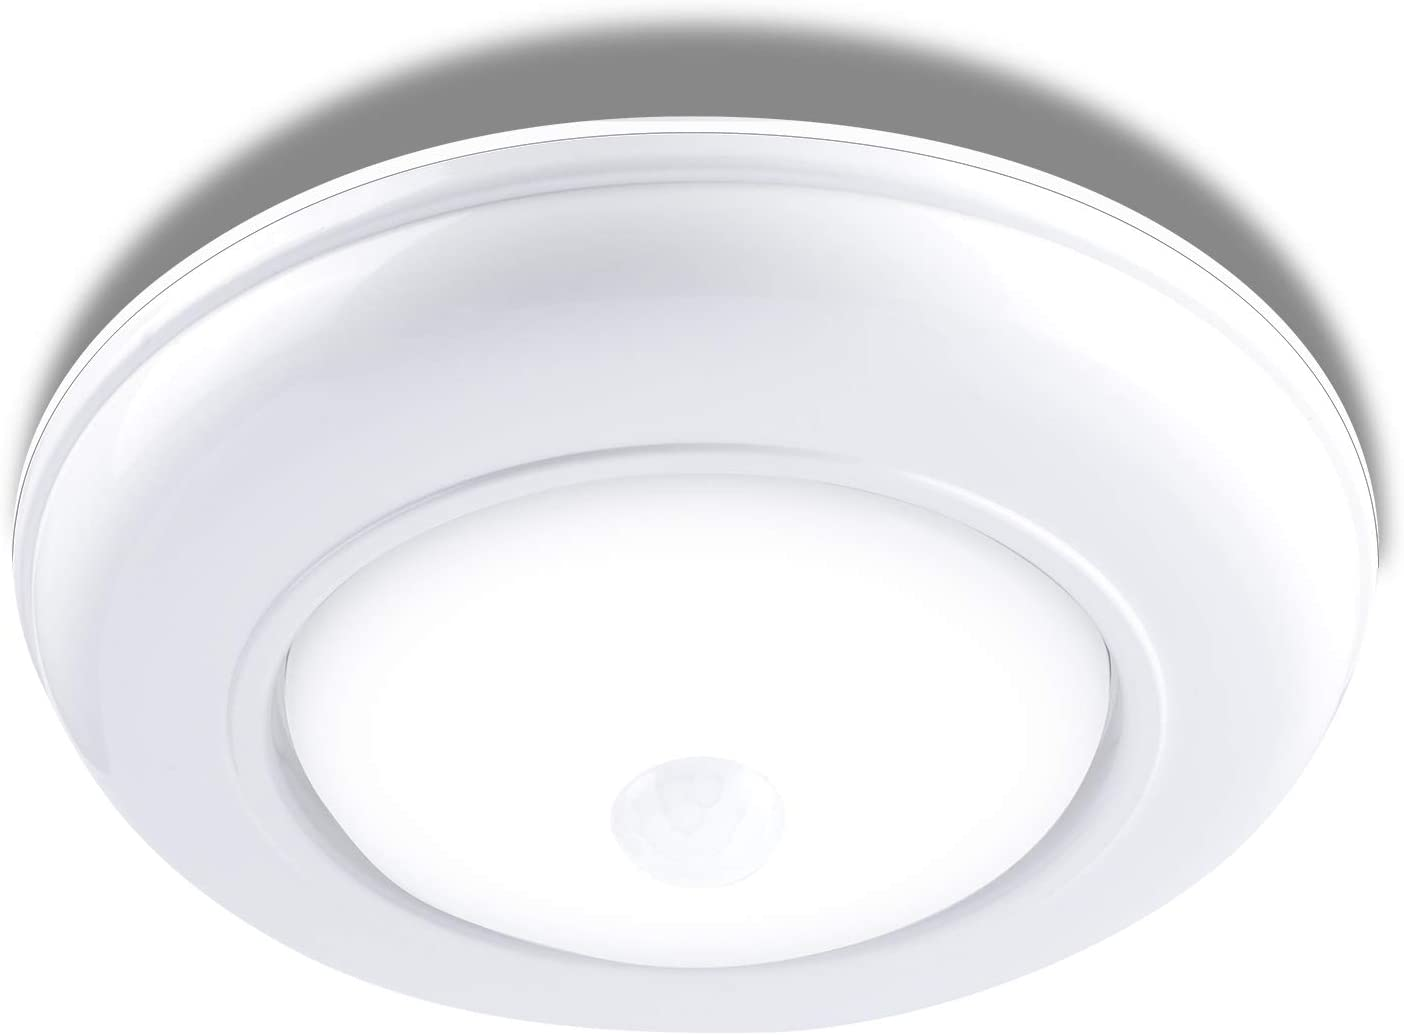 Amazon Com Flush Mount Led Ceiling Light Anunu Bathroom Light Fixture 6 7 3w 180lm 6000k Motion Sensor Round Ceiling Light For Kitchen Hallway Stairwell White Home Improvement